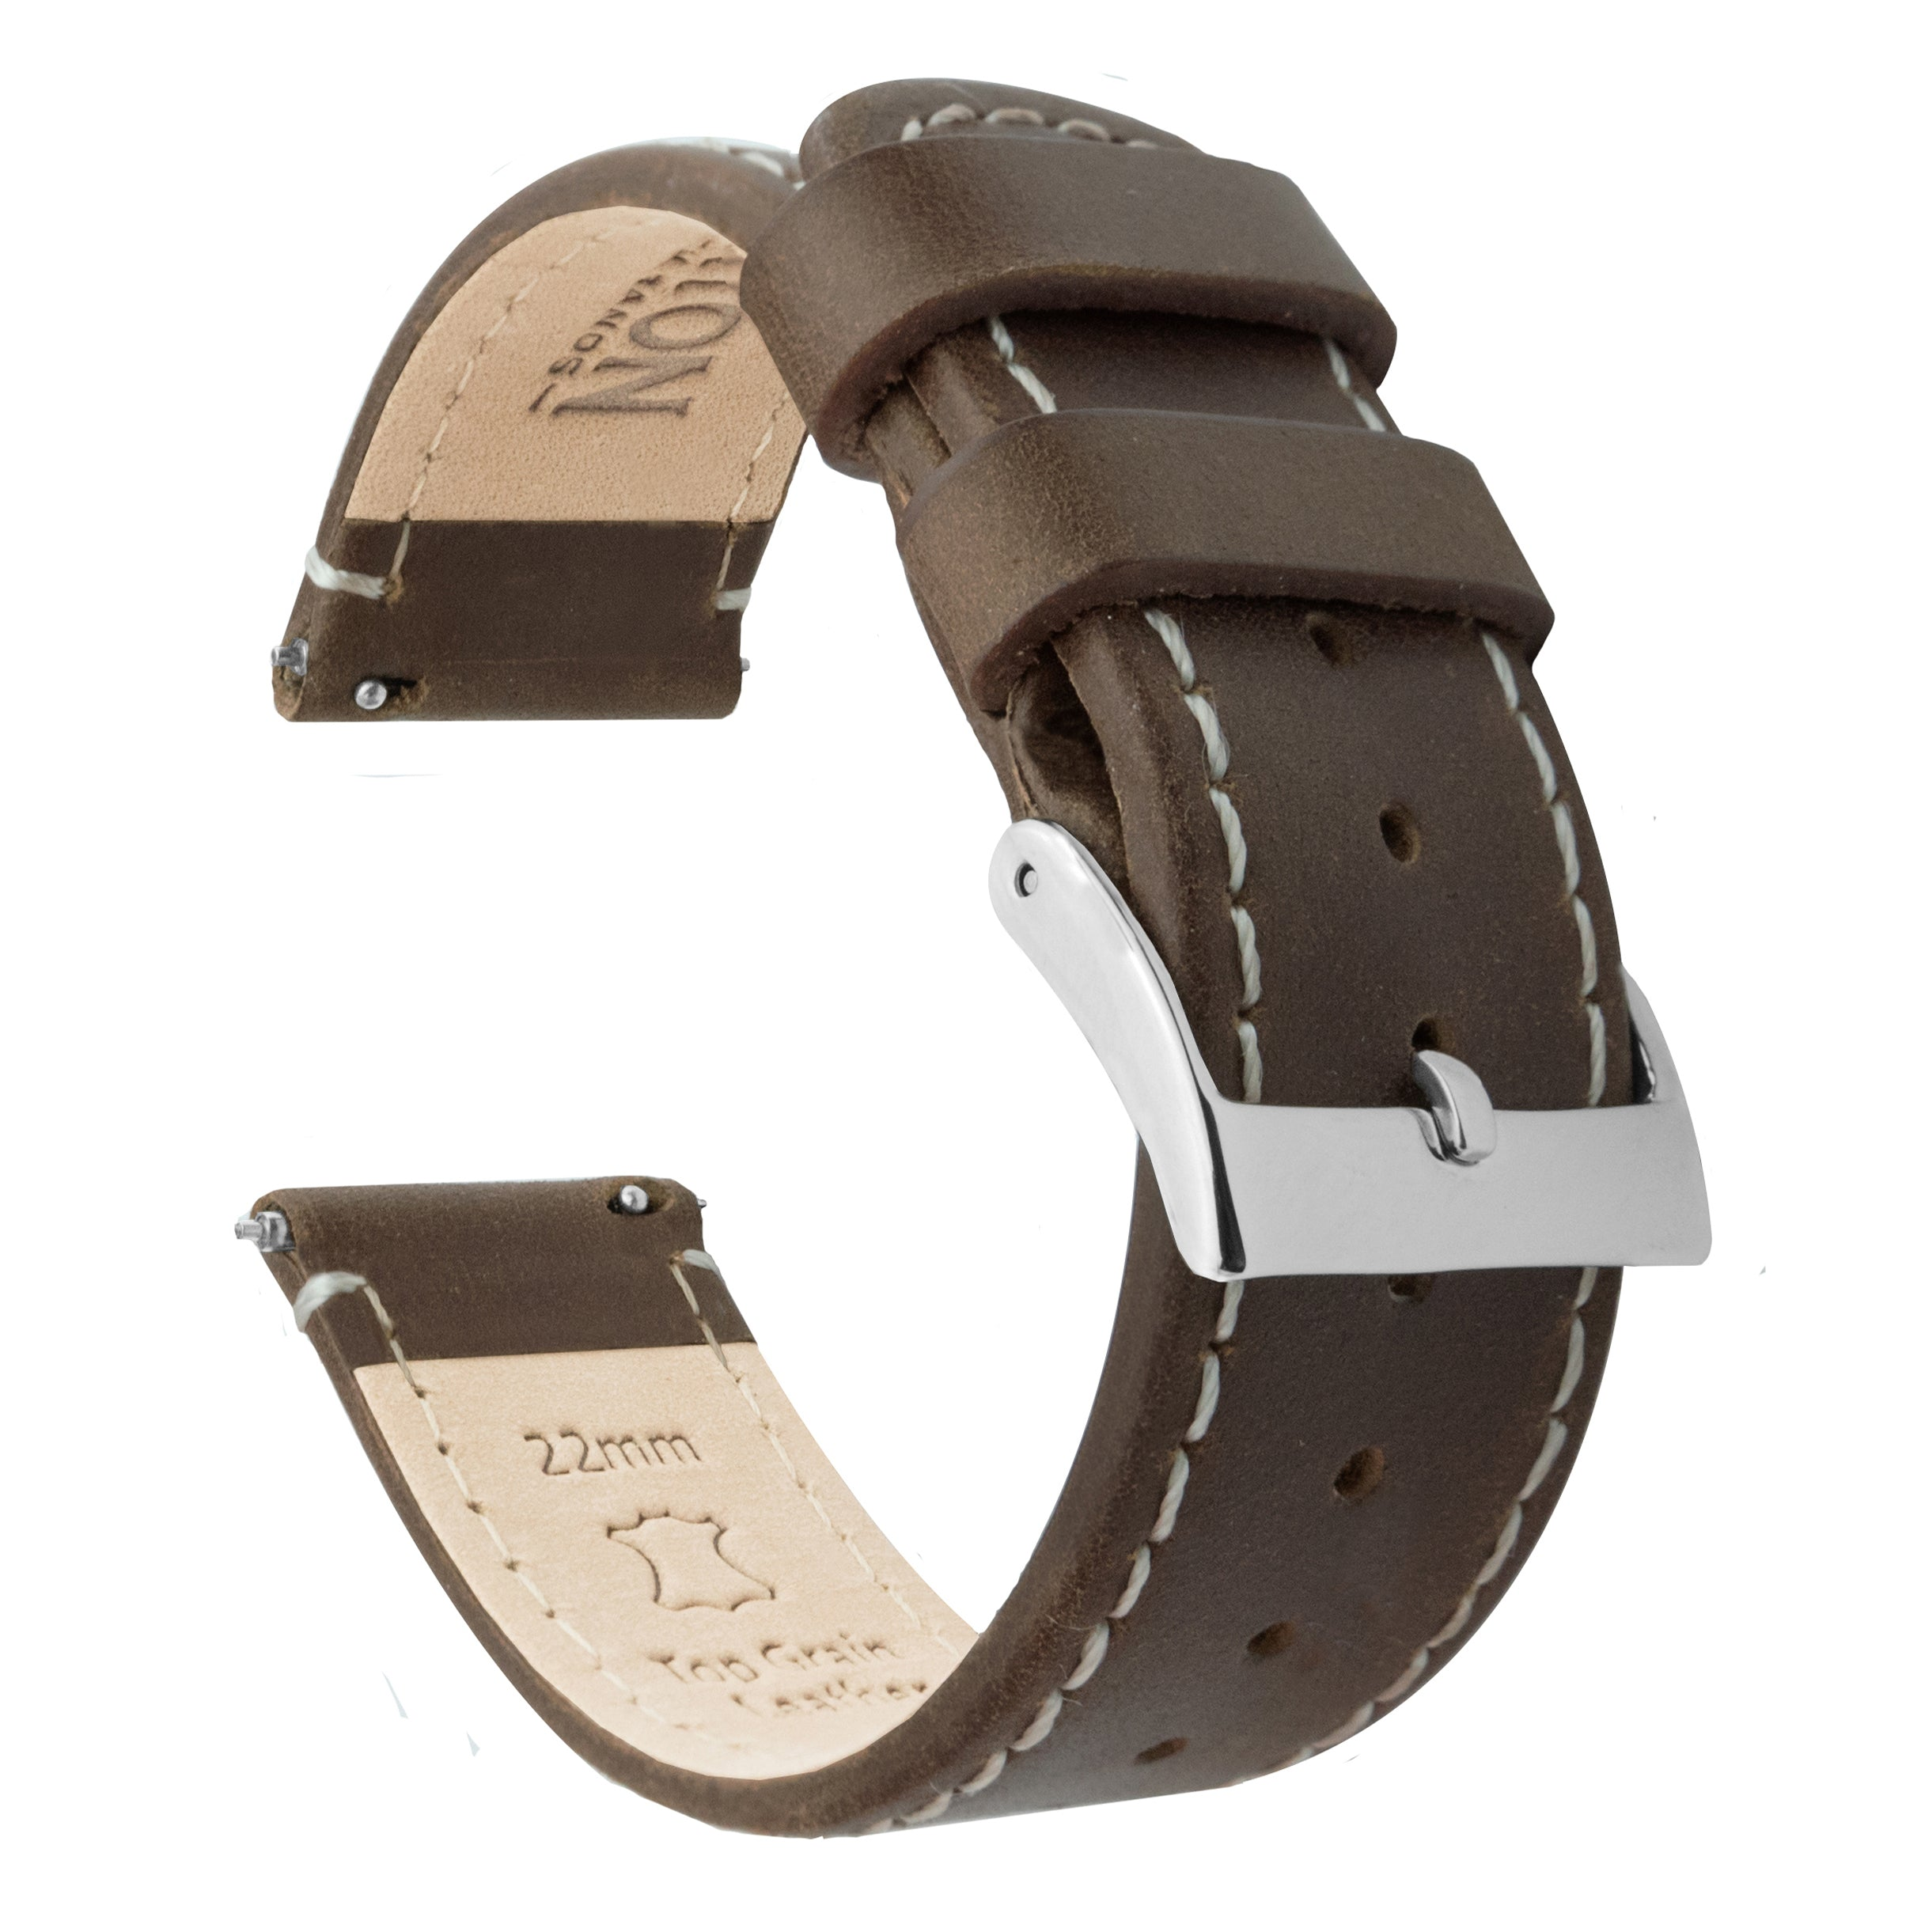 Top Grain Leather Watch Band